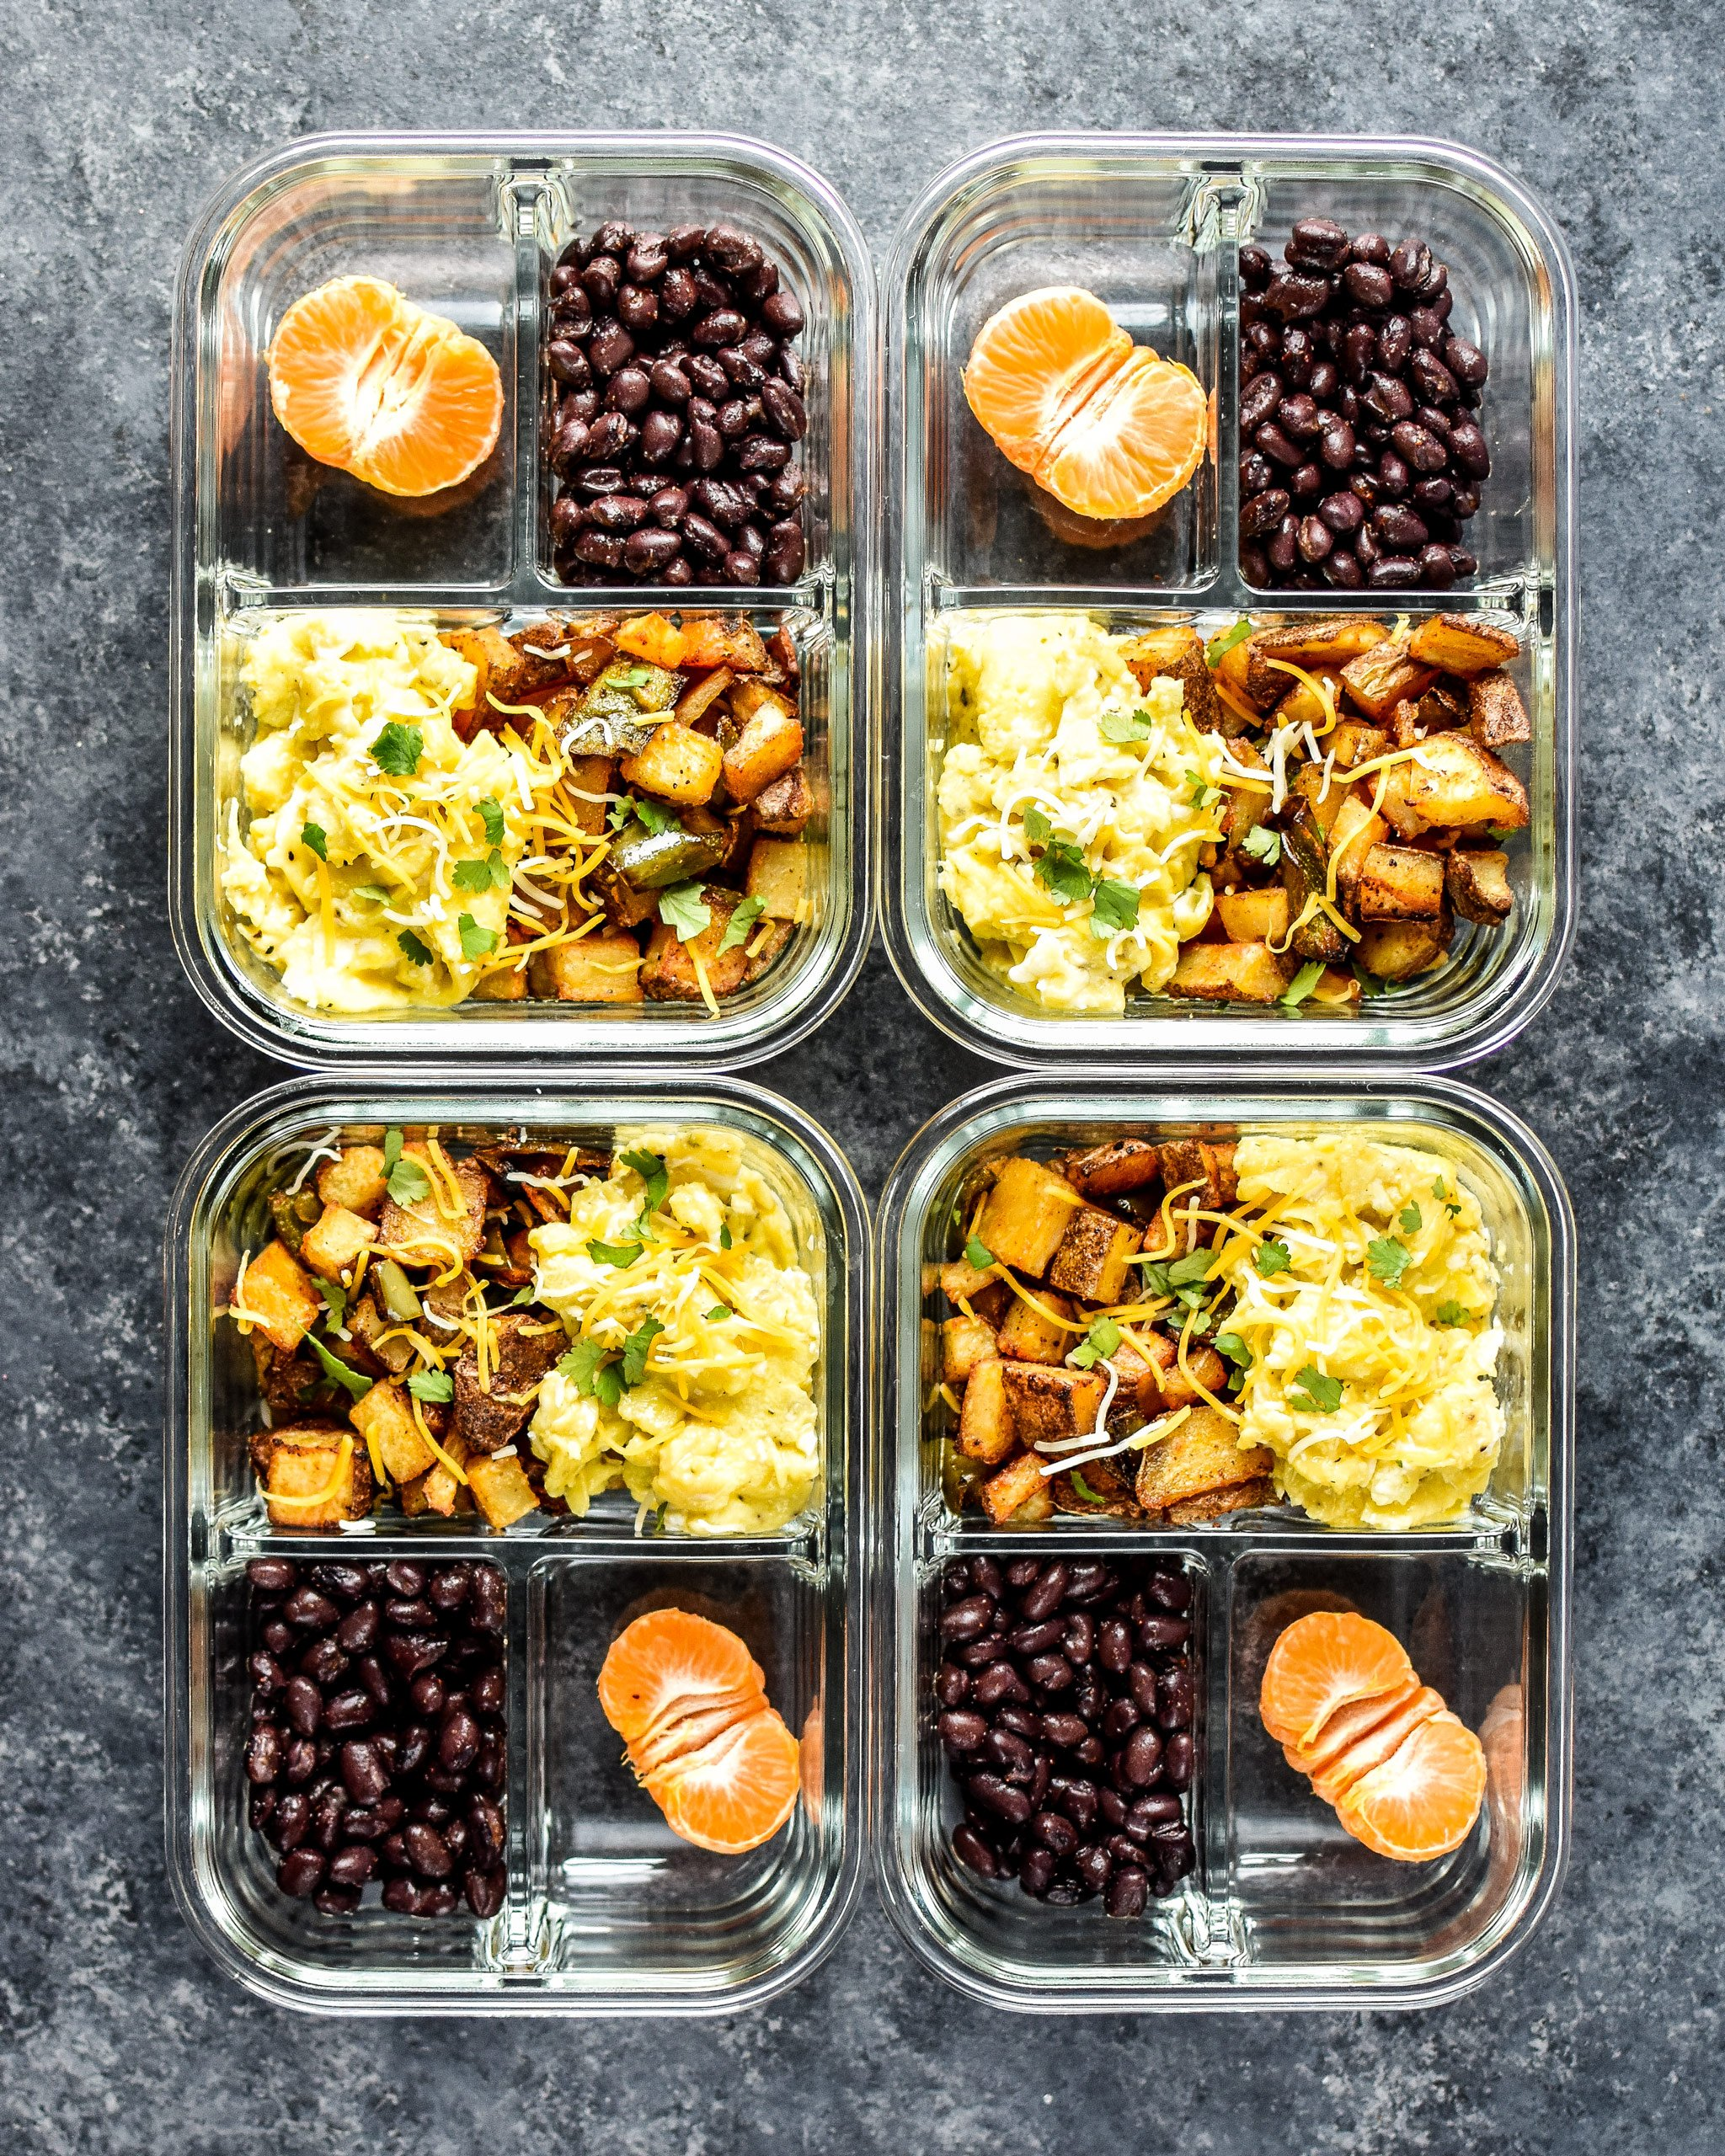 Four meal prep containers with potatoes, eggs, black beans and half a mandarin.